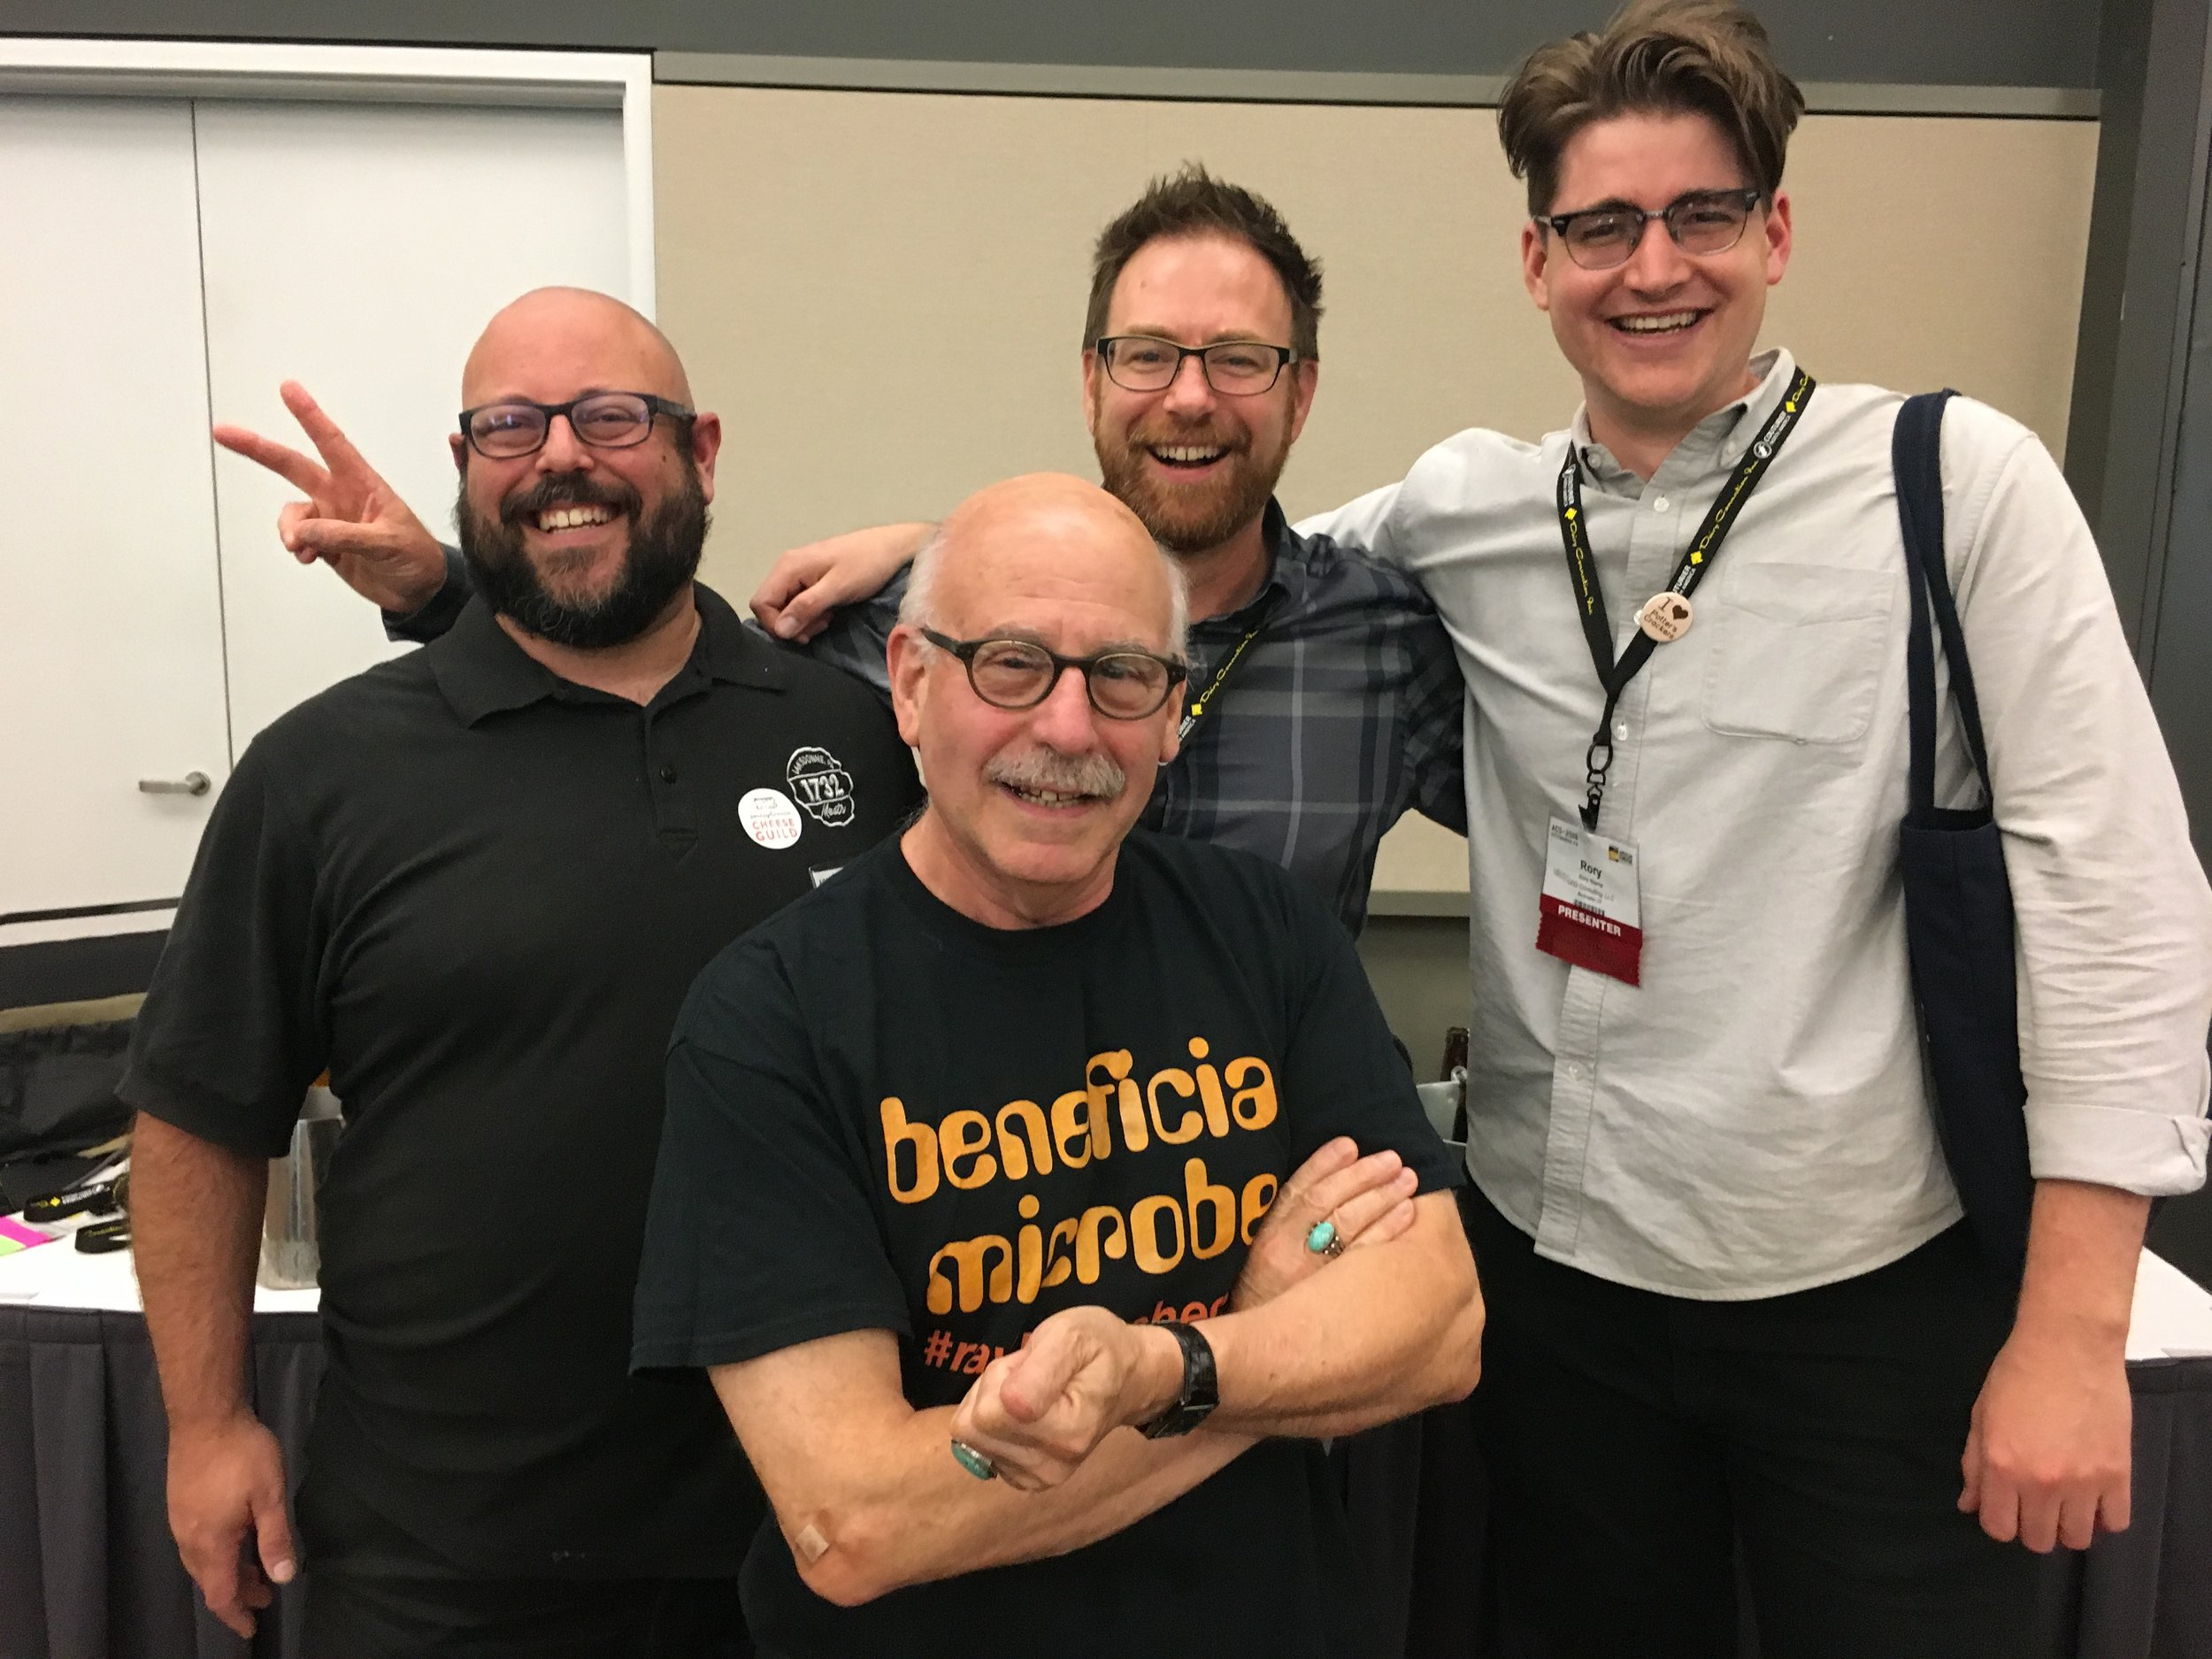 On July 26th, Ari was honored to speak on a panel along with the distinguished group shown here.  Jeff Roberts  (front) moderated the panel which included Ari, Victory Brewing's Bill  Covaleski  (middle) and Cheesemonger  Rory Stamp  (right). Approximately 200 people attended the session on fermentation and artisan production which included tastings from Victory Brewing Co., Southern Tier Brewing Co. and Stoudt's. Ari offered up his award winning Lamb Prosciutto as part of the tasting which made a delicious pairing with St. Malachi Cheese from the  Farm at Doe Run .